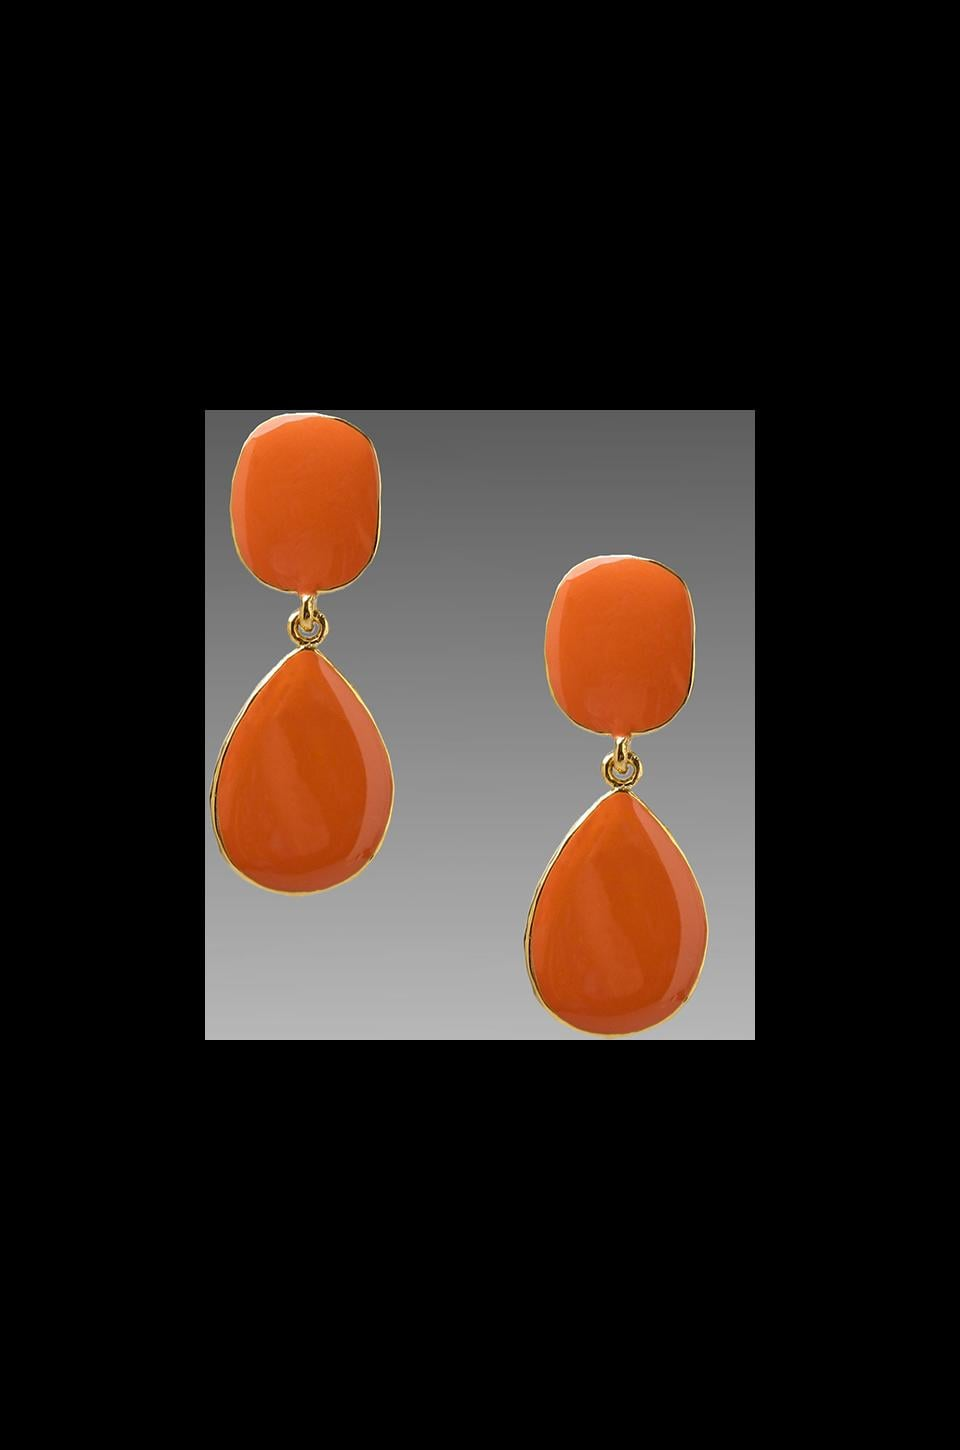 Kenneth Jay Lane Drop Stone Earrings in Coral